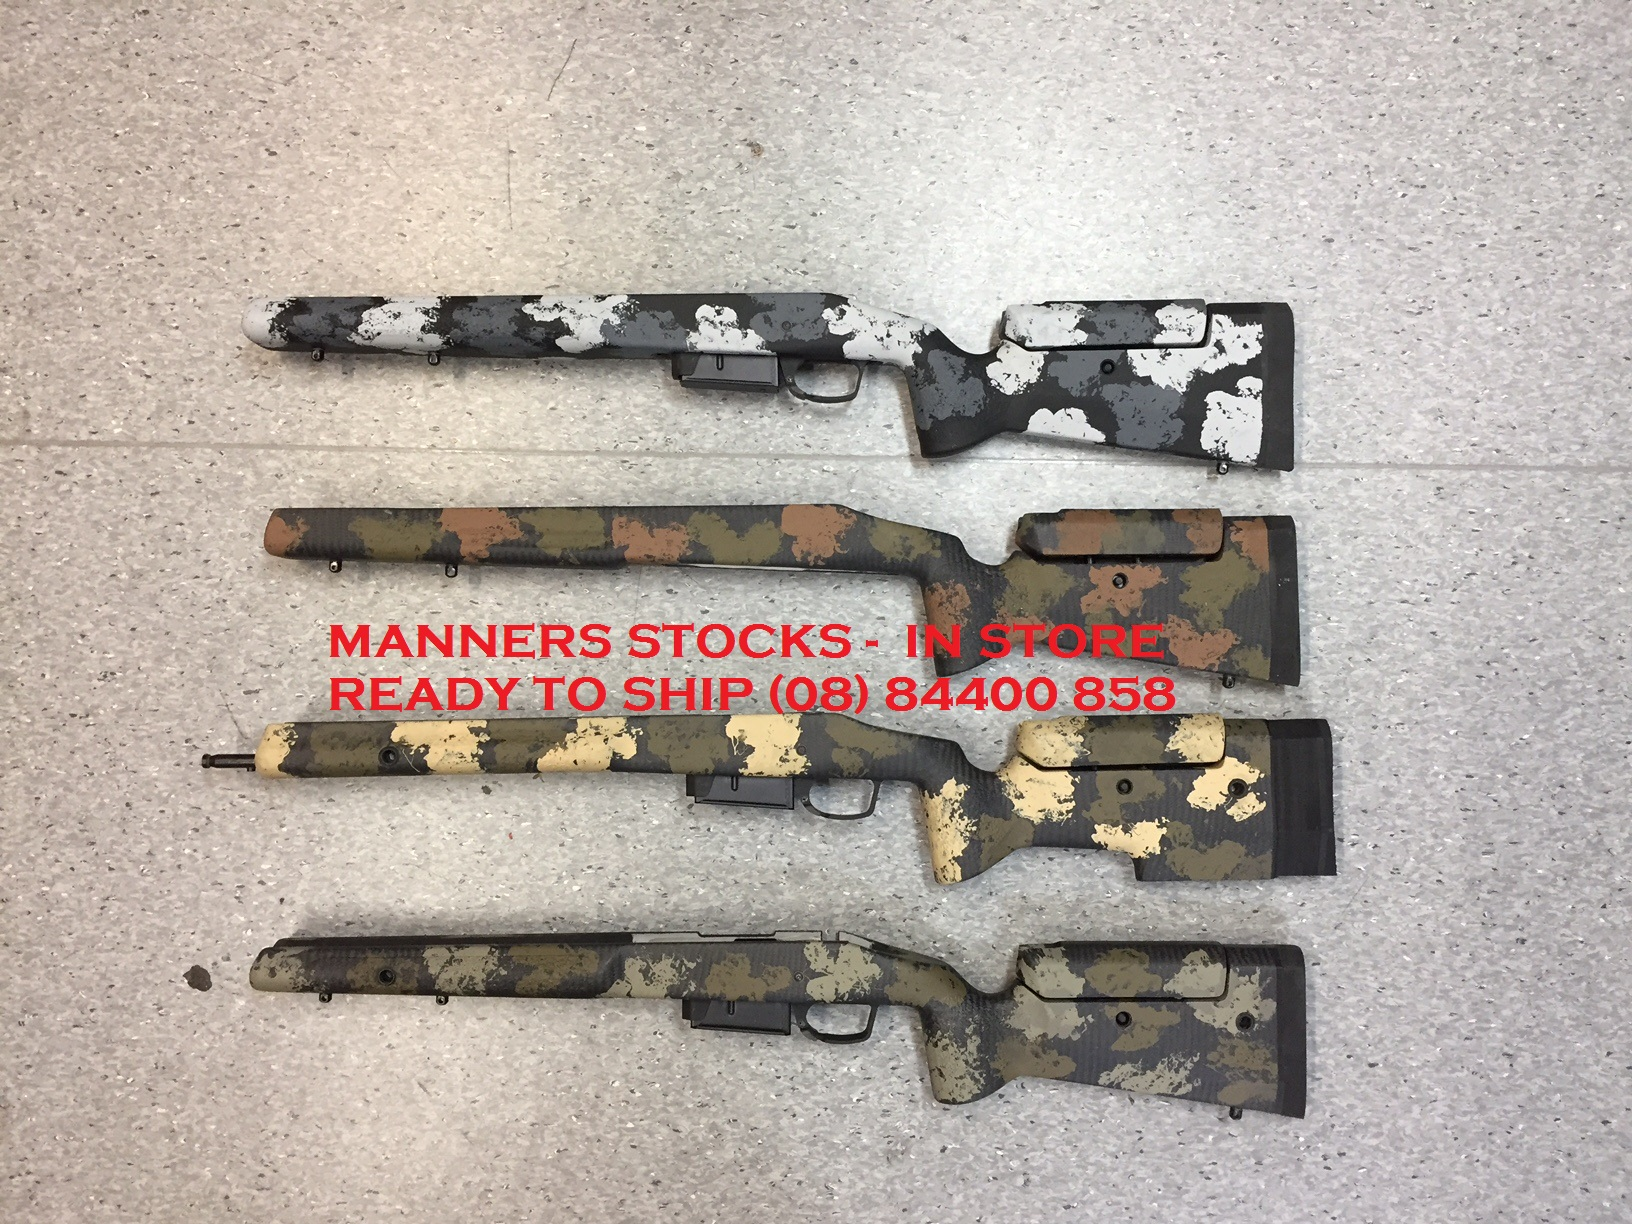 MANNERS STOCKS - IN STORE